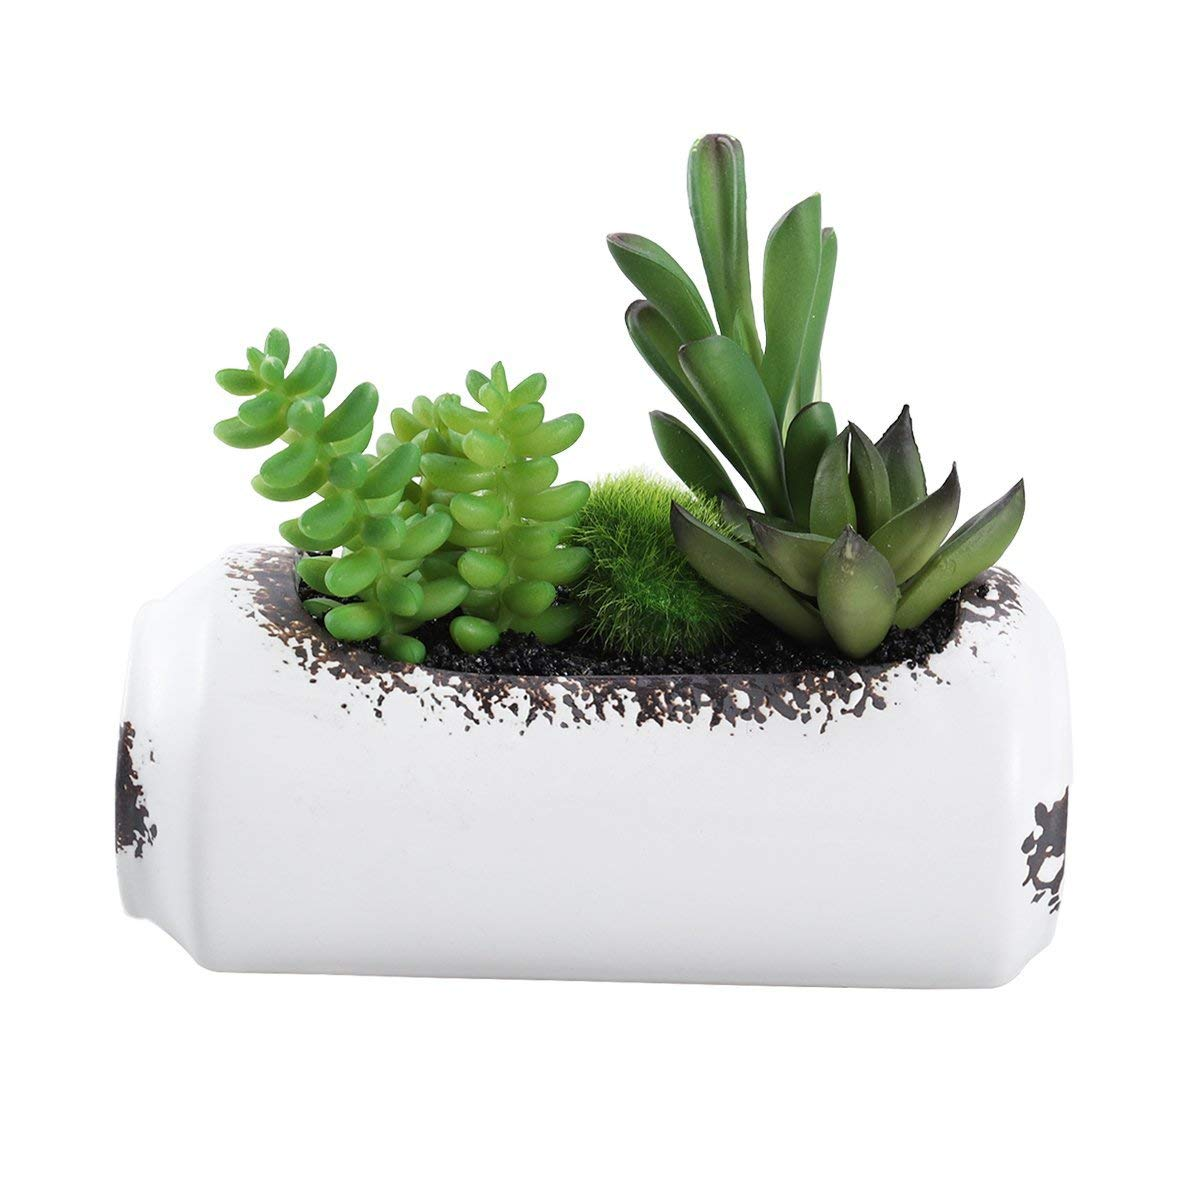 Buy Vosarea Artificial Plants And Flowers In Pots Container For Home Decor Indoor Outdoors Potted Small Fake Succulents Plants Arrangements For Decoration Include Pot And Plants In Cheap Price On Alibaba Com